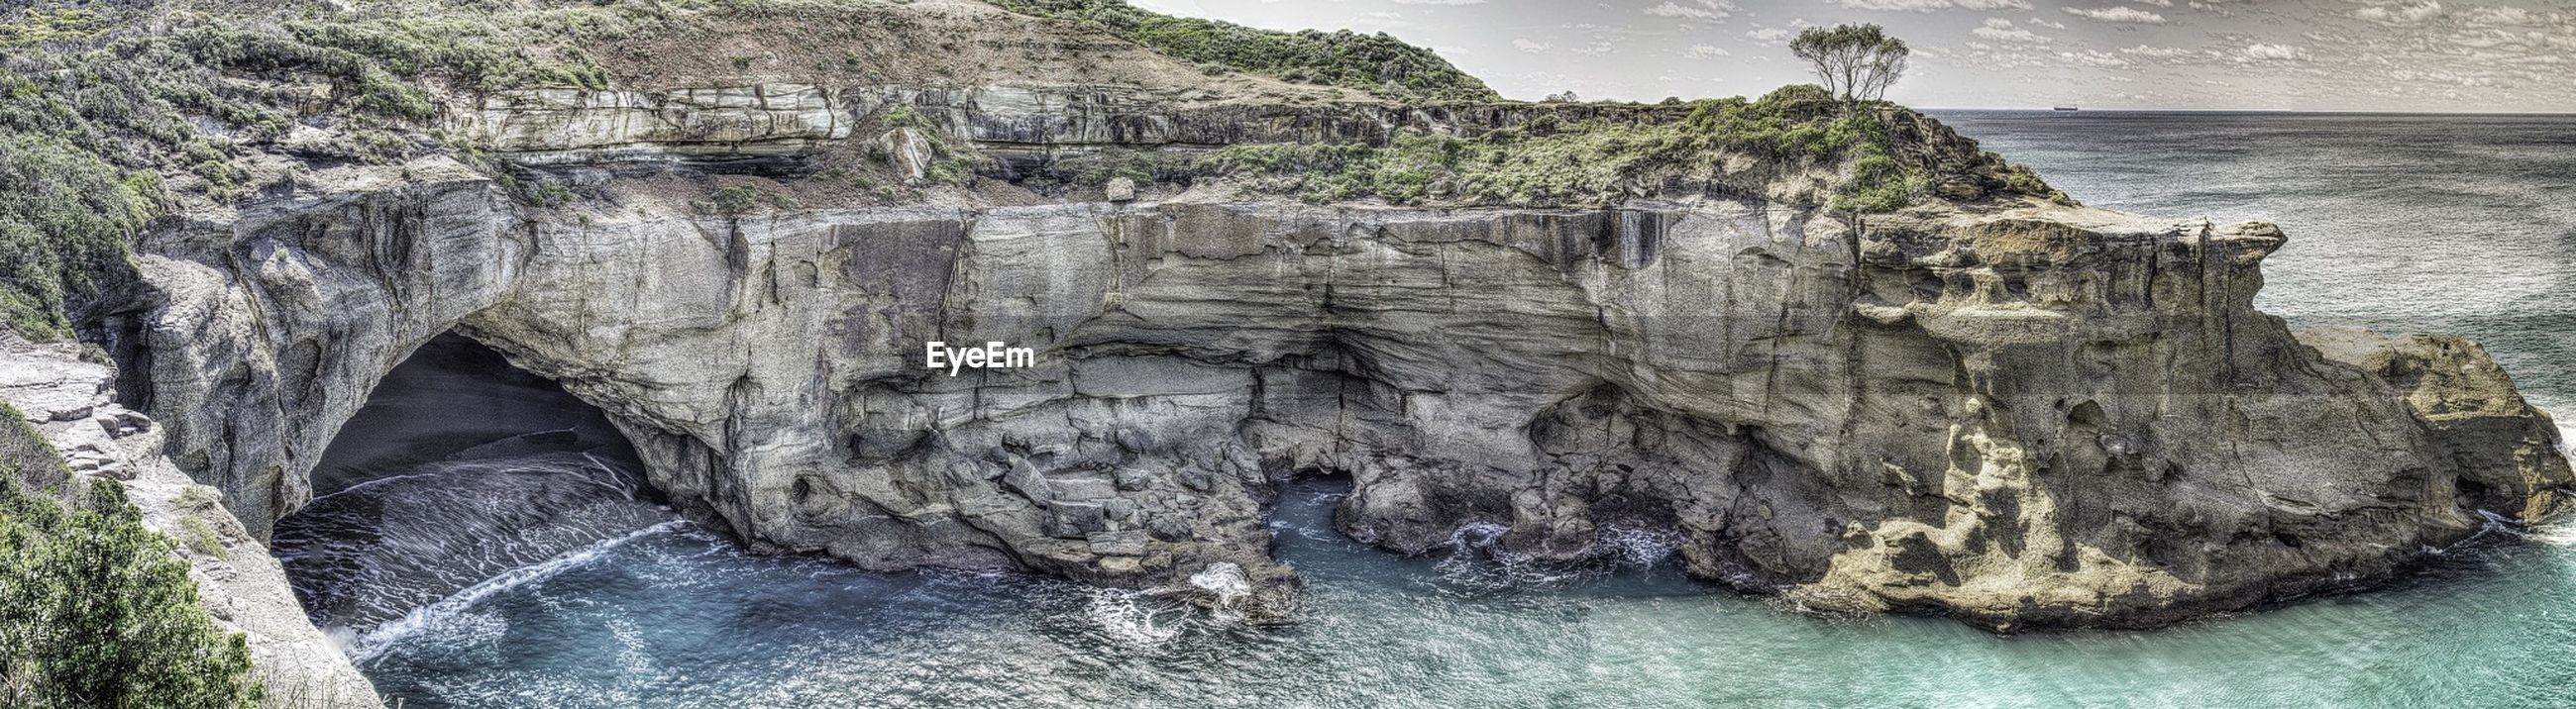 water, rock formation, sea, tranquil scene, scenics, tranquility, rock - object, beauty in nature, nature, cliff, rock, geology, idyllic, eroded, beach, horizon over water, non-urban scene, high angle view, shore, outdoors